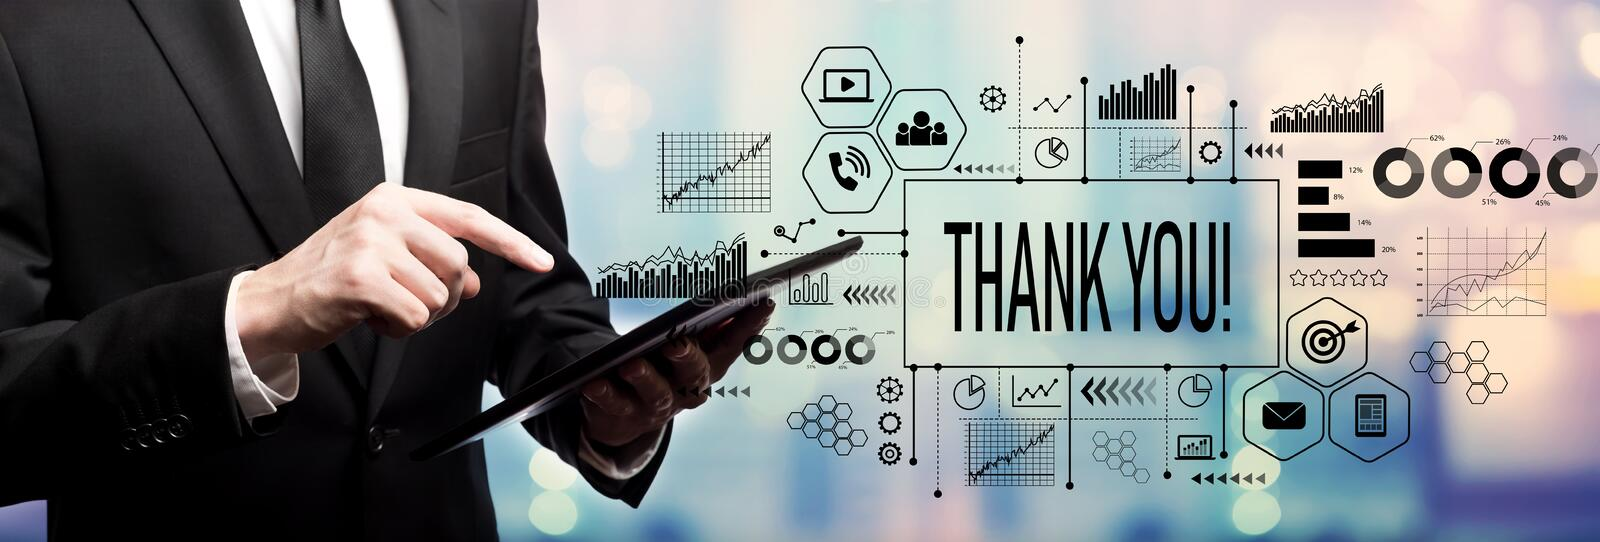 Thank you message with businessman stock photos